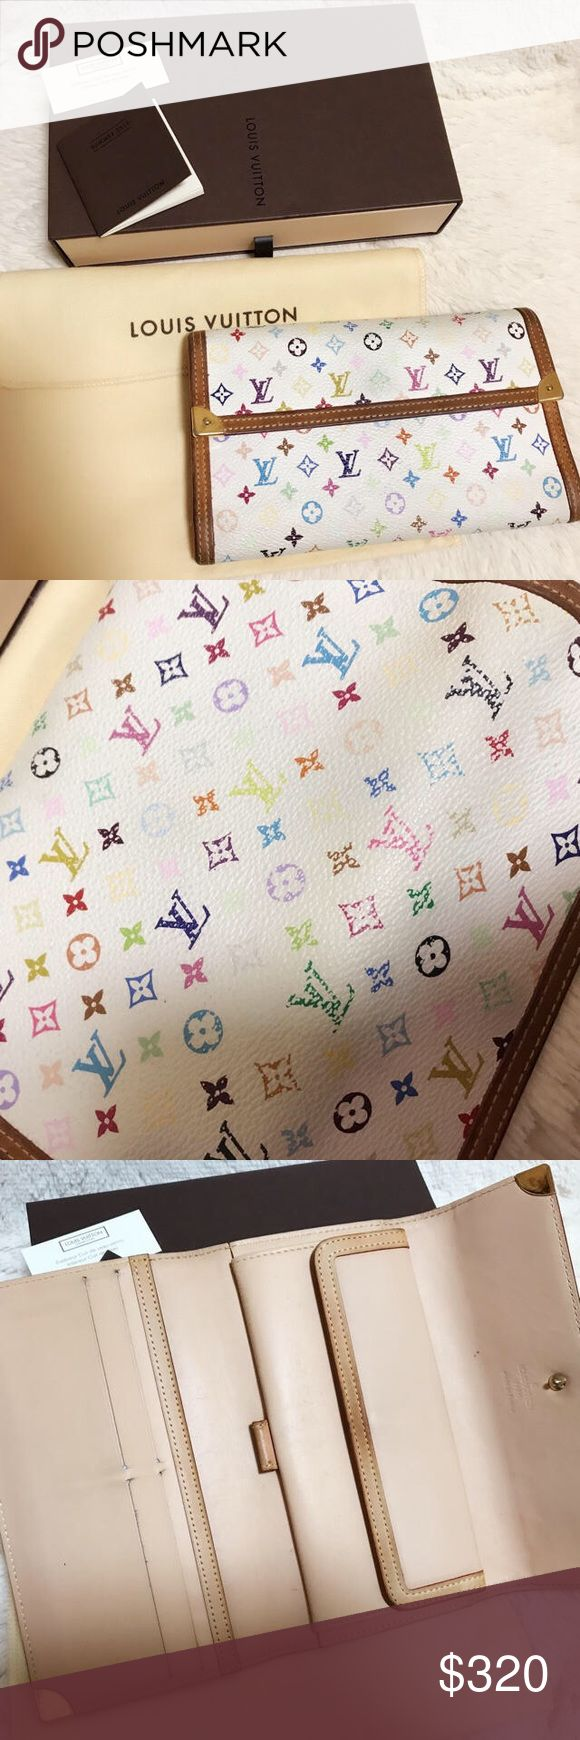 Louise Vuitton Monogram multicolor Wallet It's very good condition! It comes with dust bag and the box.  Serial number is on 4th picture!! Louis Vuitton Bags Wallets